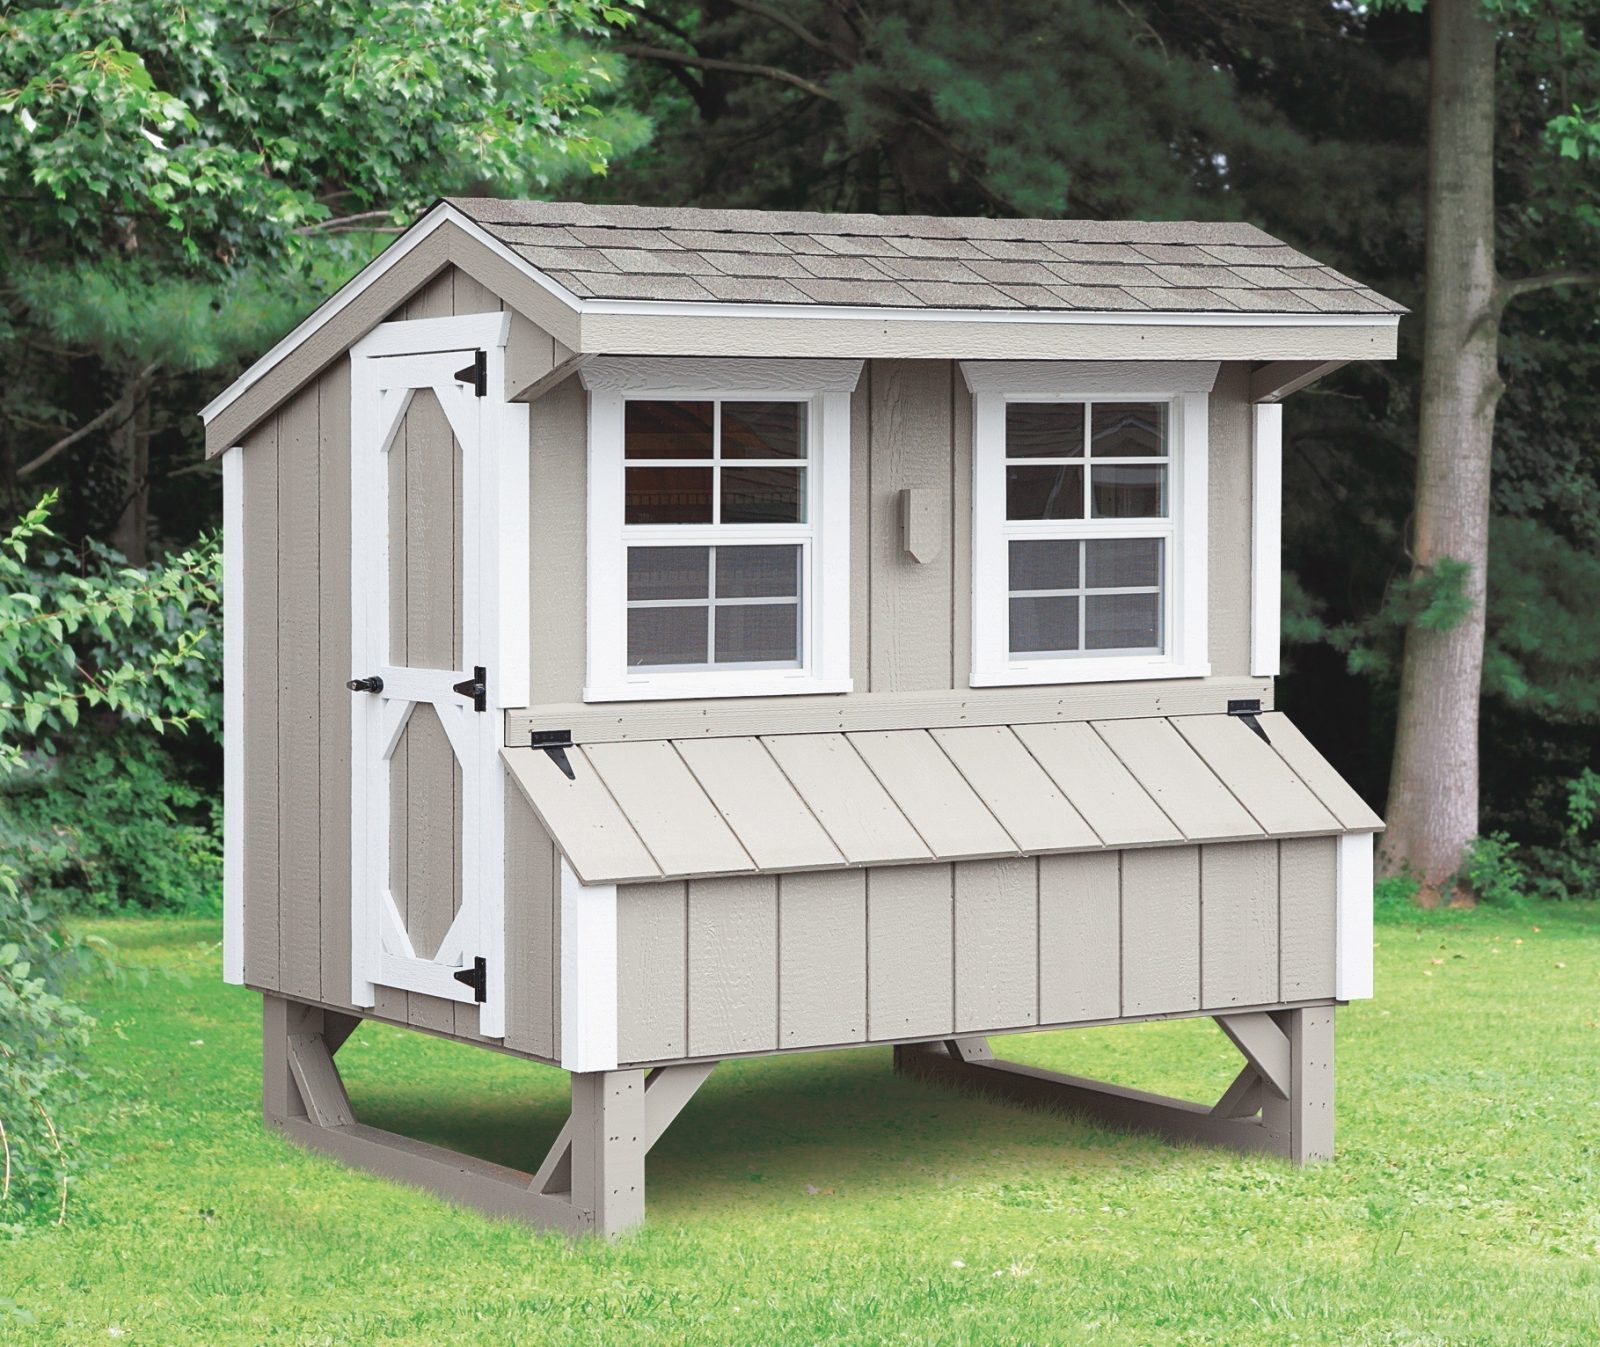 Backyard Chicken Coops | Chicken Coops for Sale Online ...